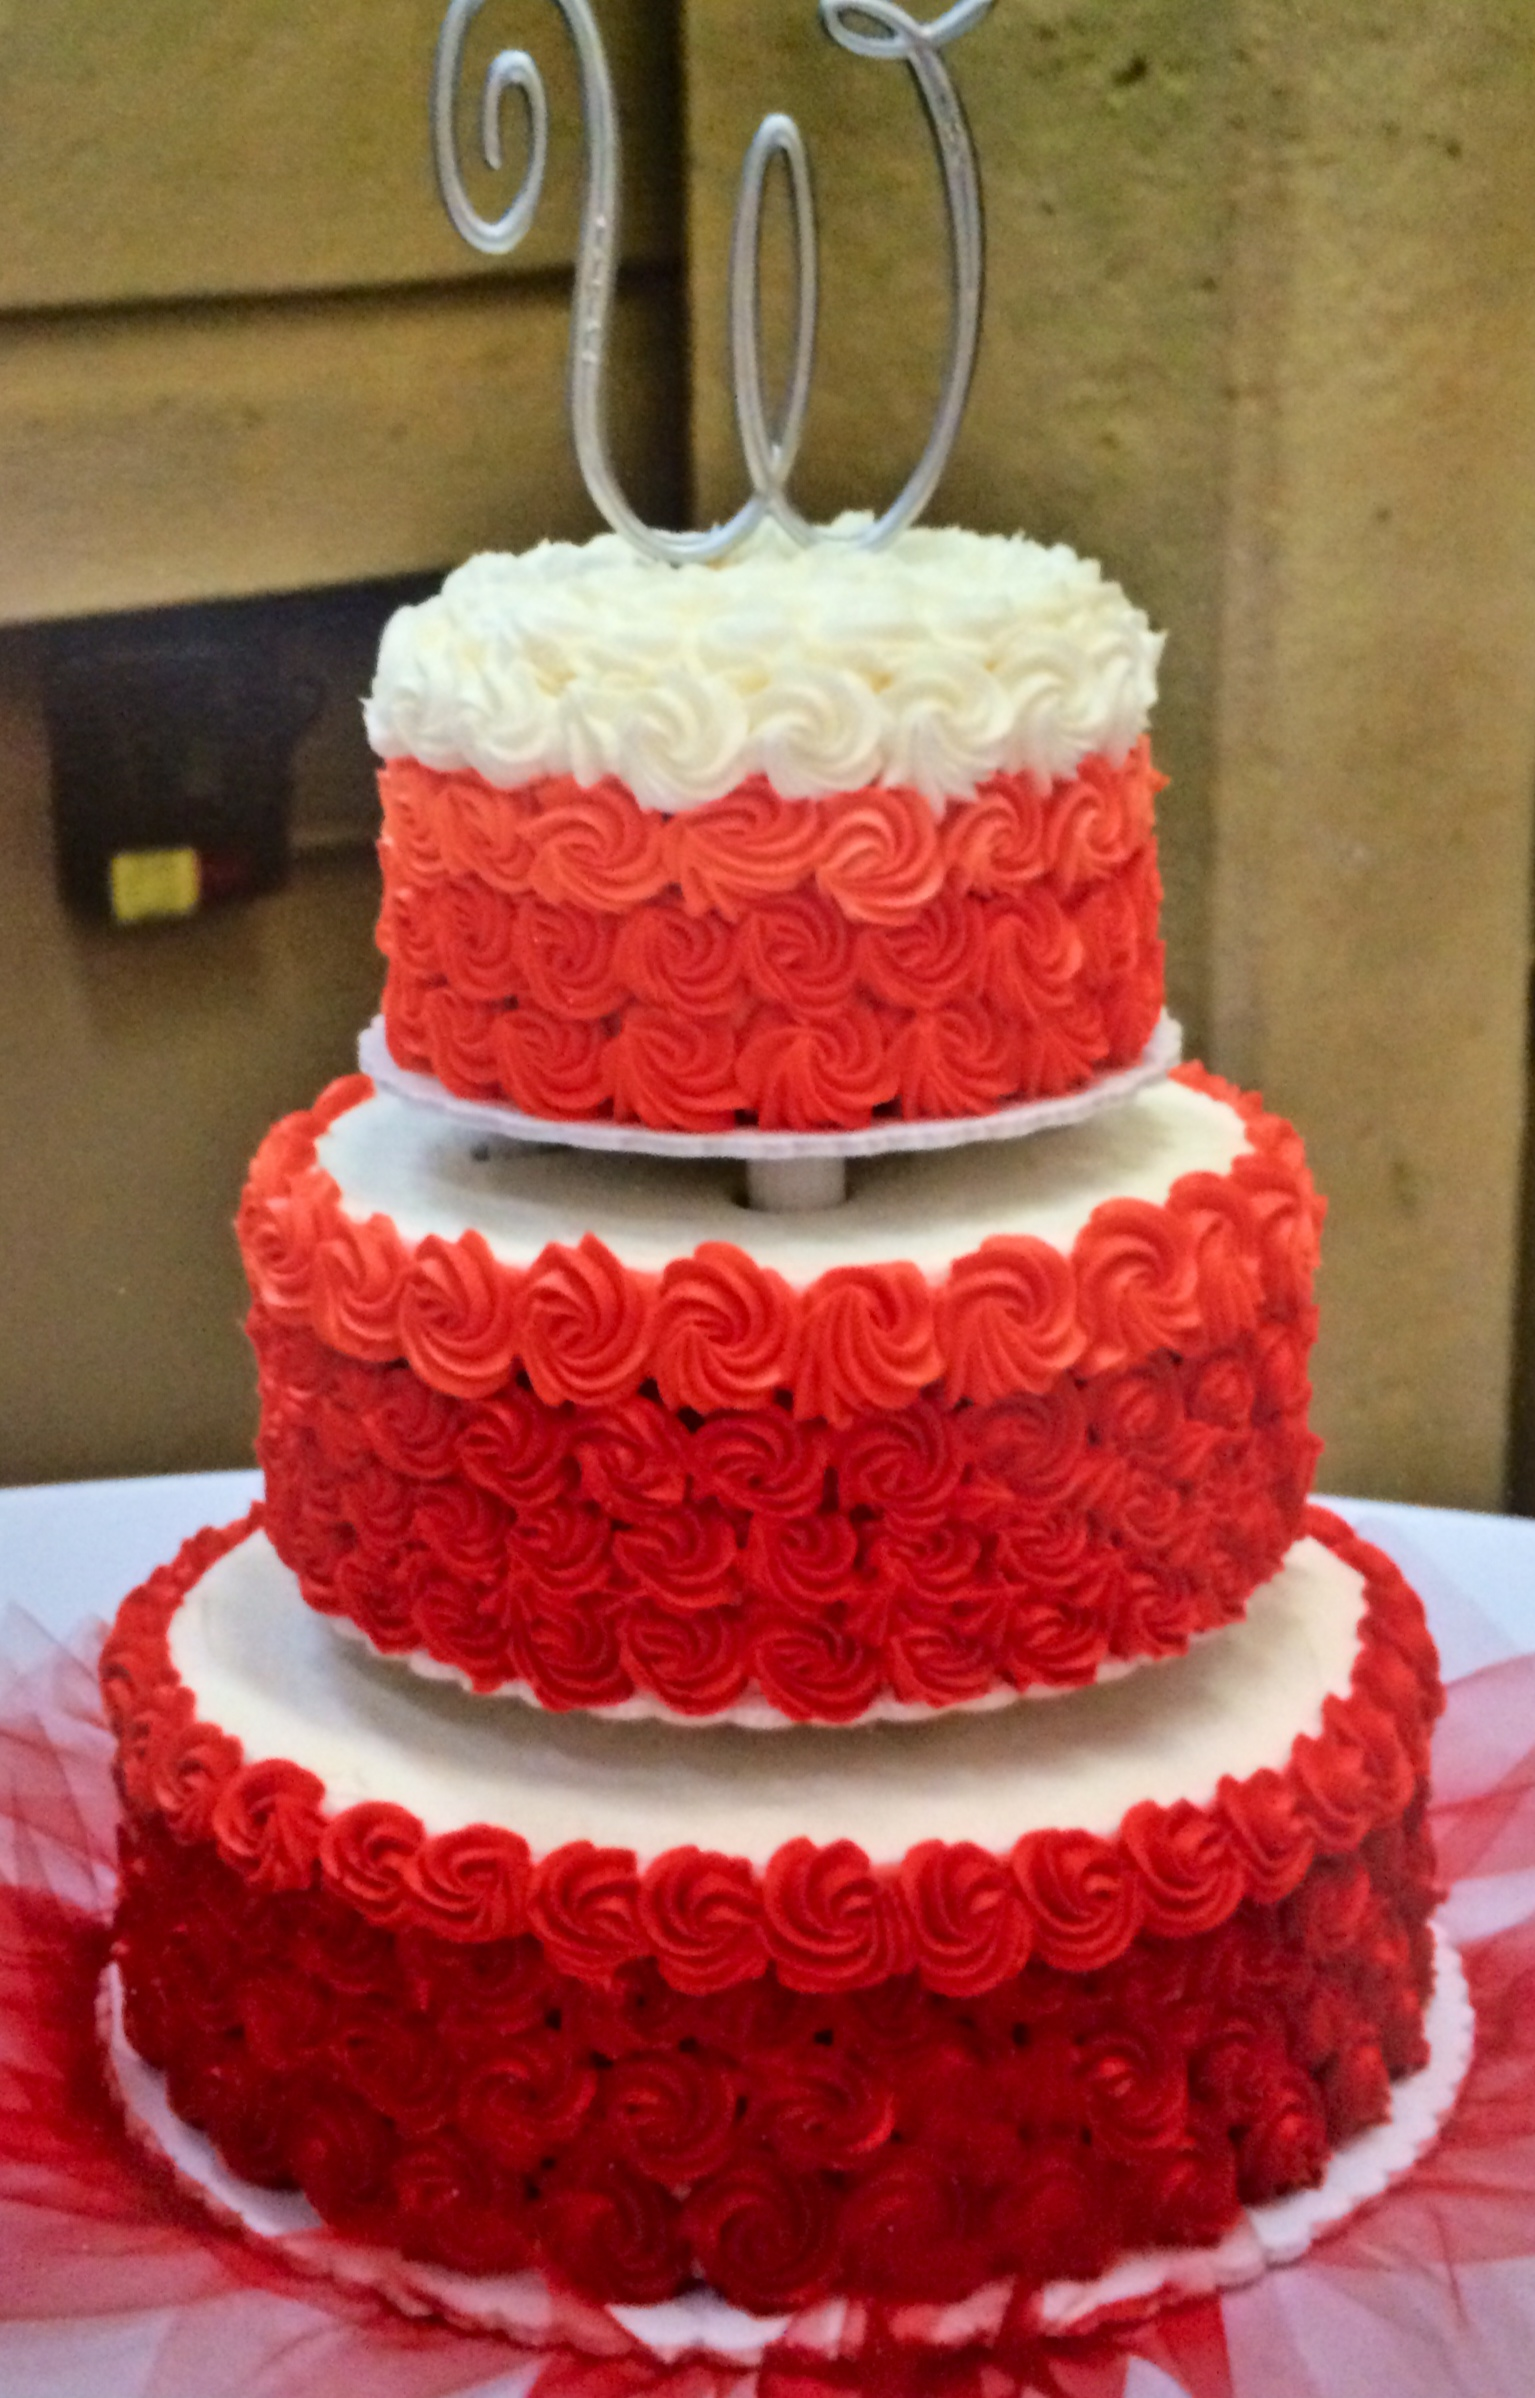 Wedding Cakes     WIXEY BAKERY RedOmbre weddingcake jpg